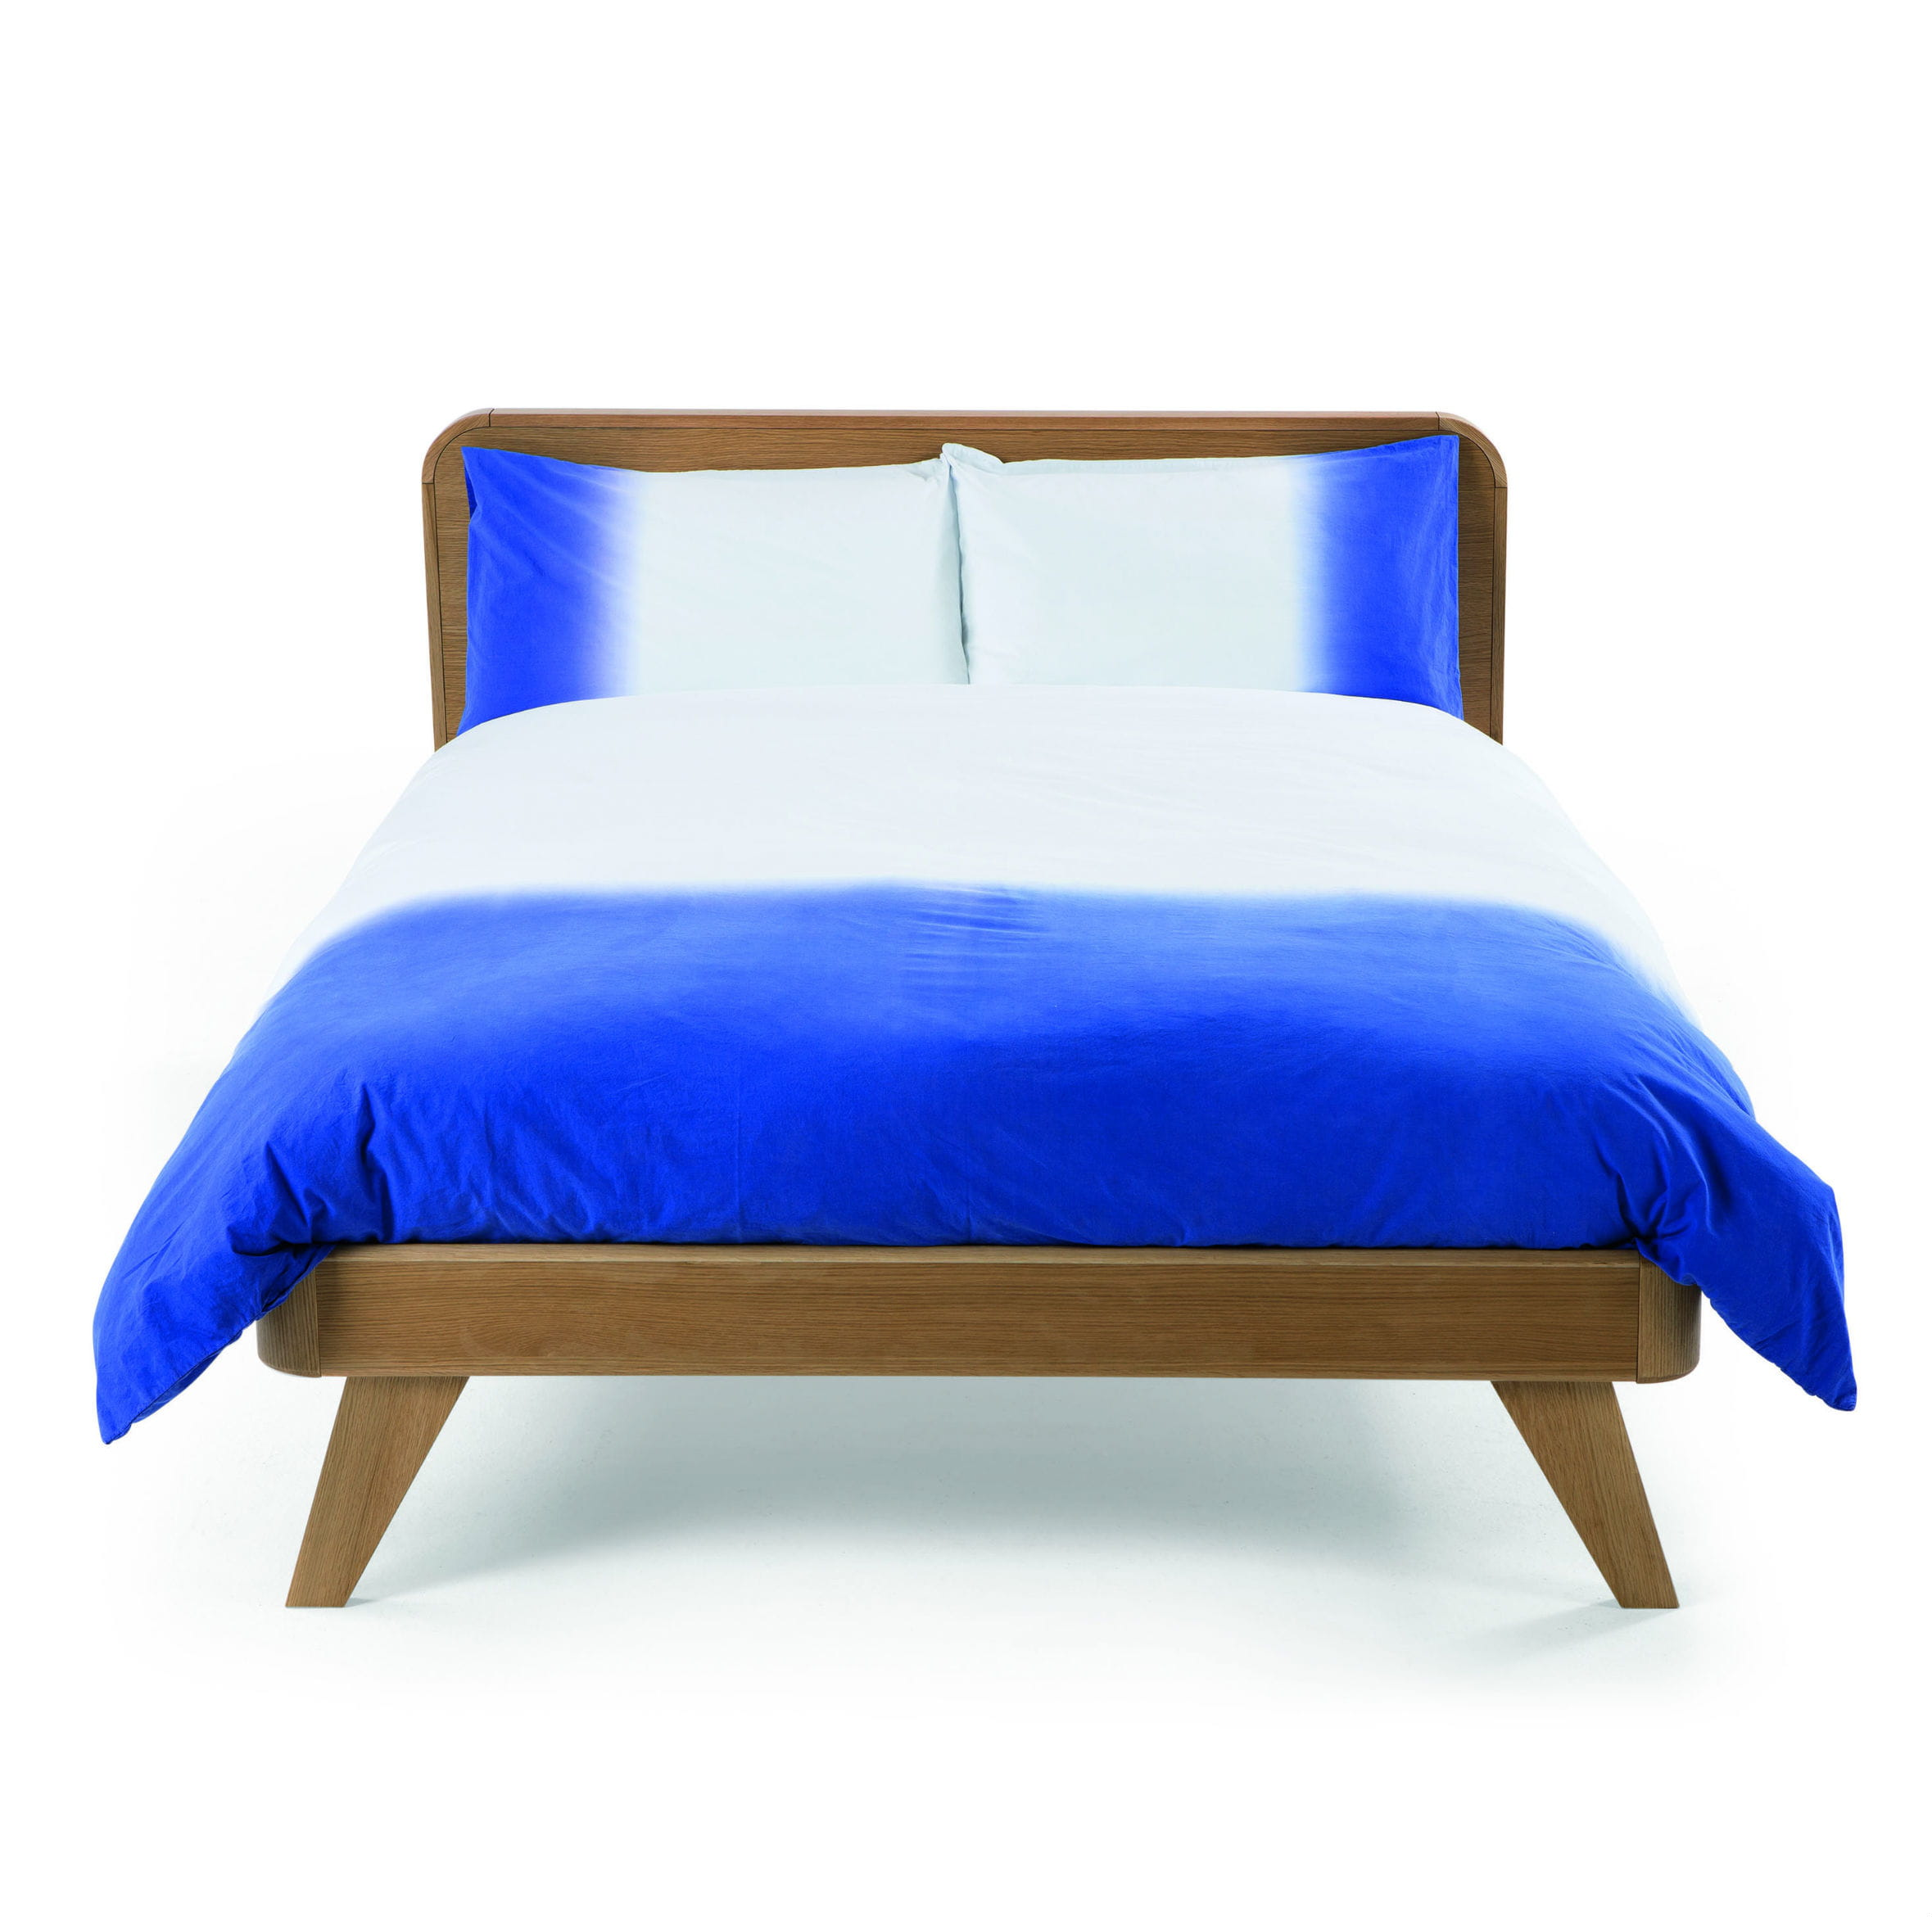 linge de lit dipped bleu de cap sur la d co indigo journal des femmes. Black Bedroom Furniture Sets. Home Design Ideas